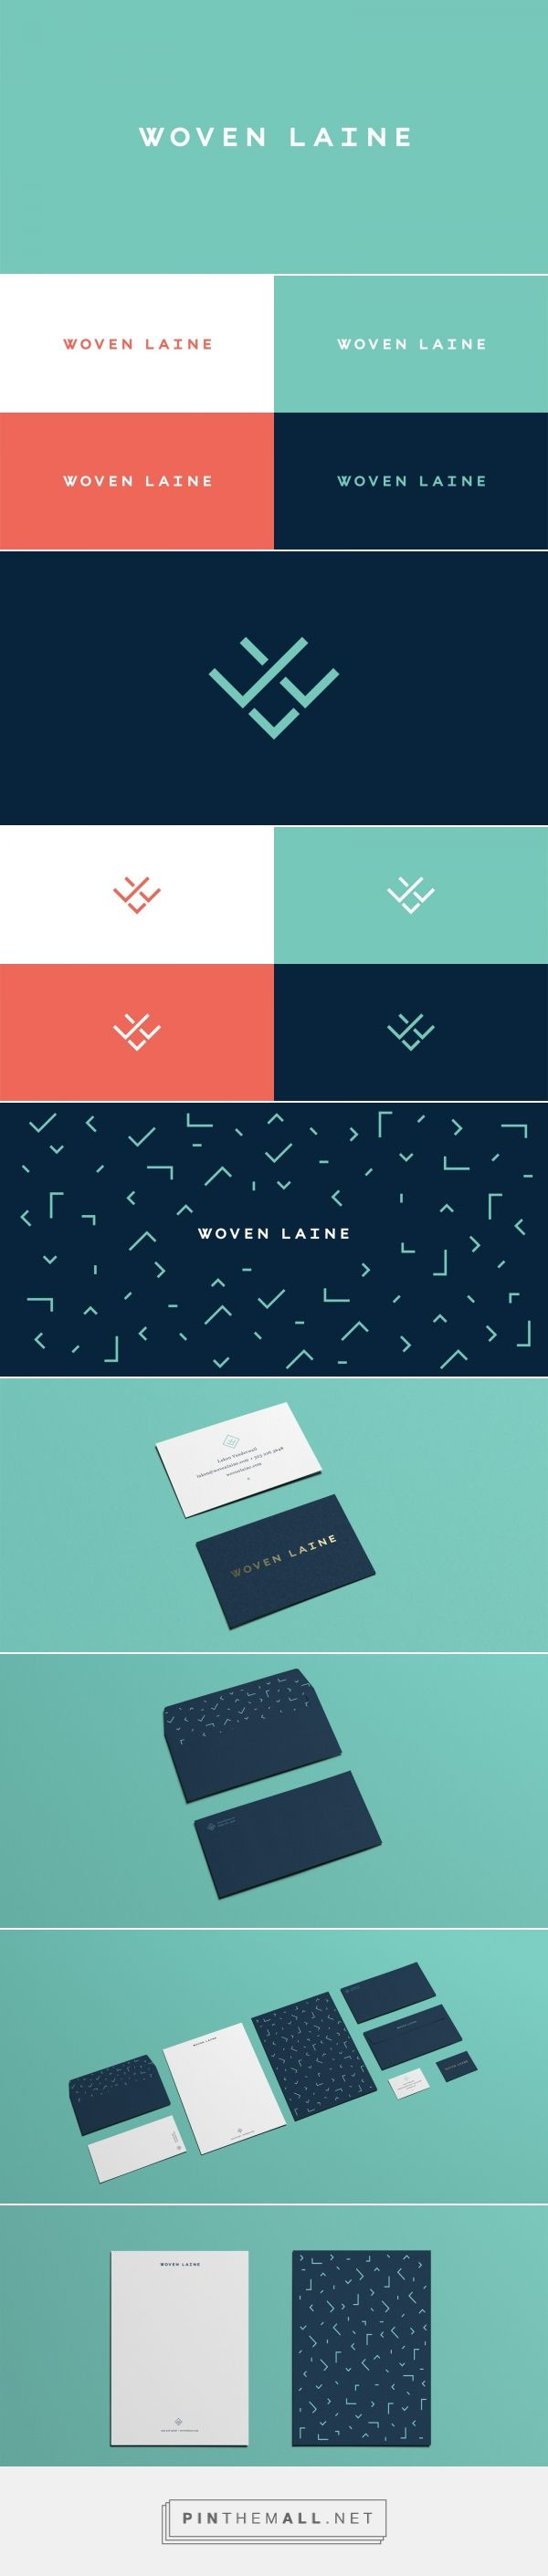 Woven Laine Branding by Mast | Fivestar Branding – Design and Branding Agency & Inspiration Gallery